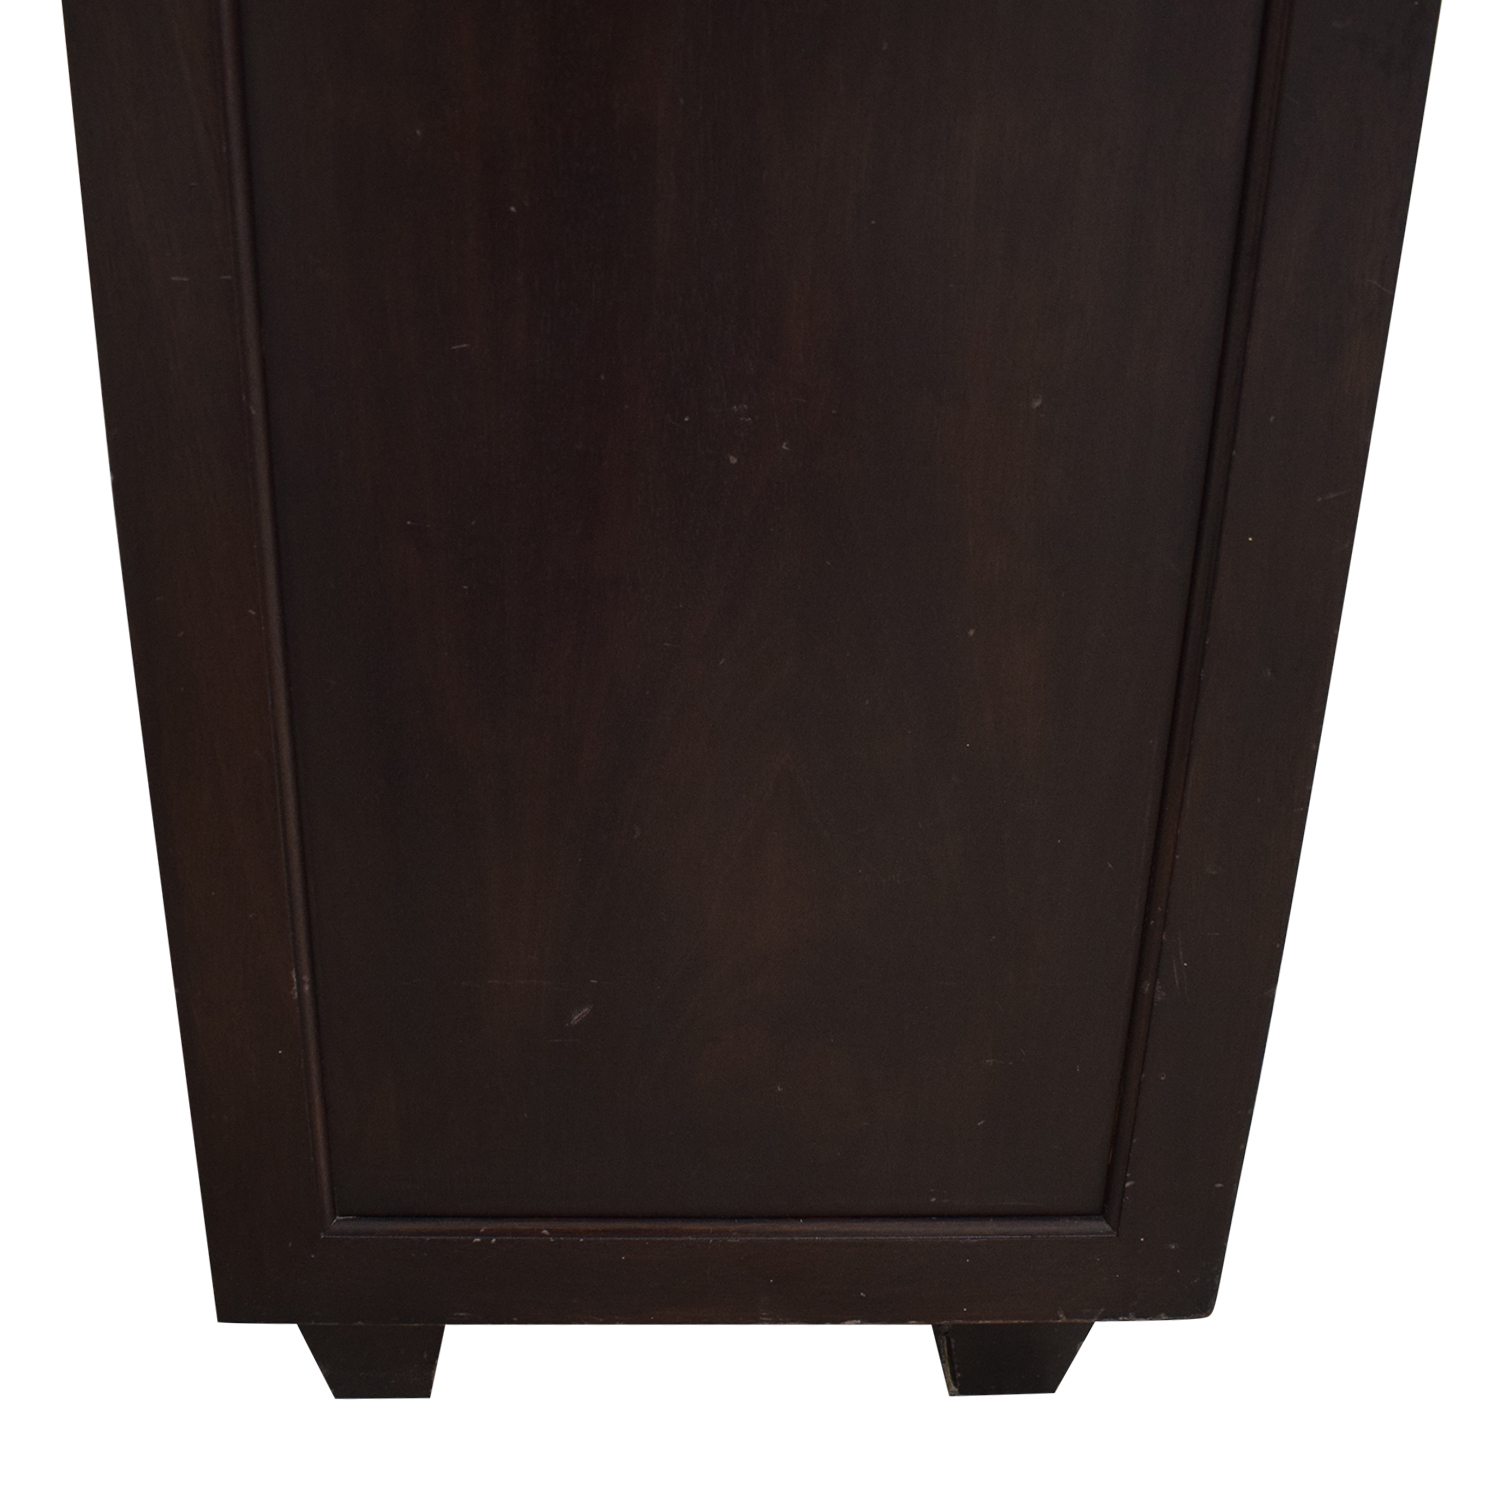 Stationary Cabinet with Drawers used